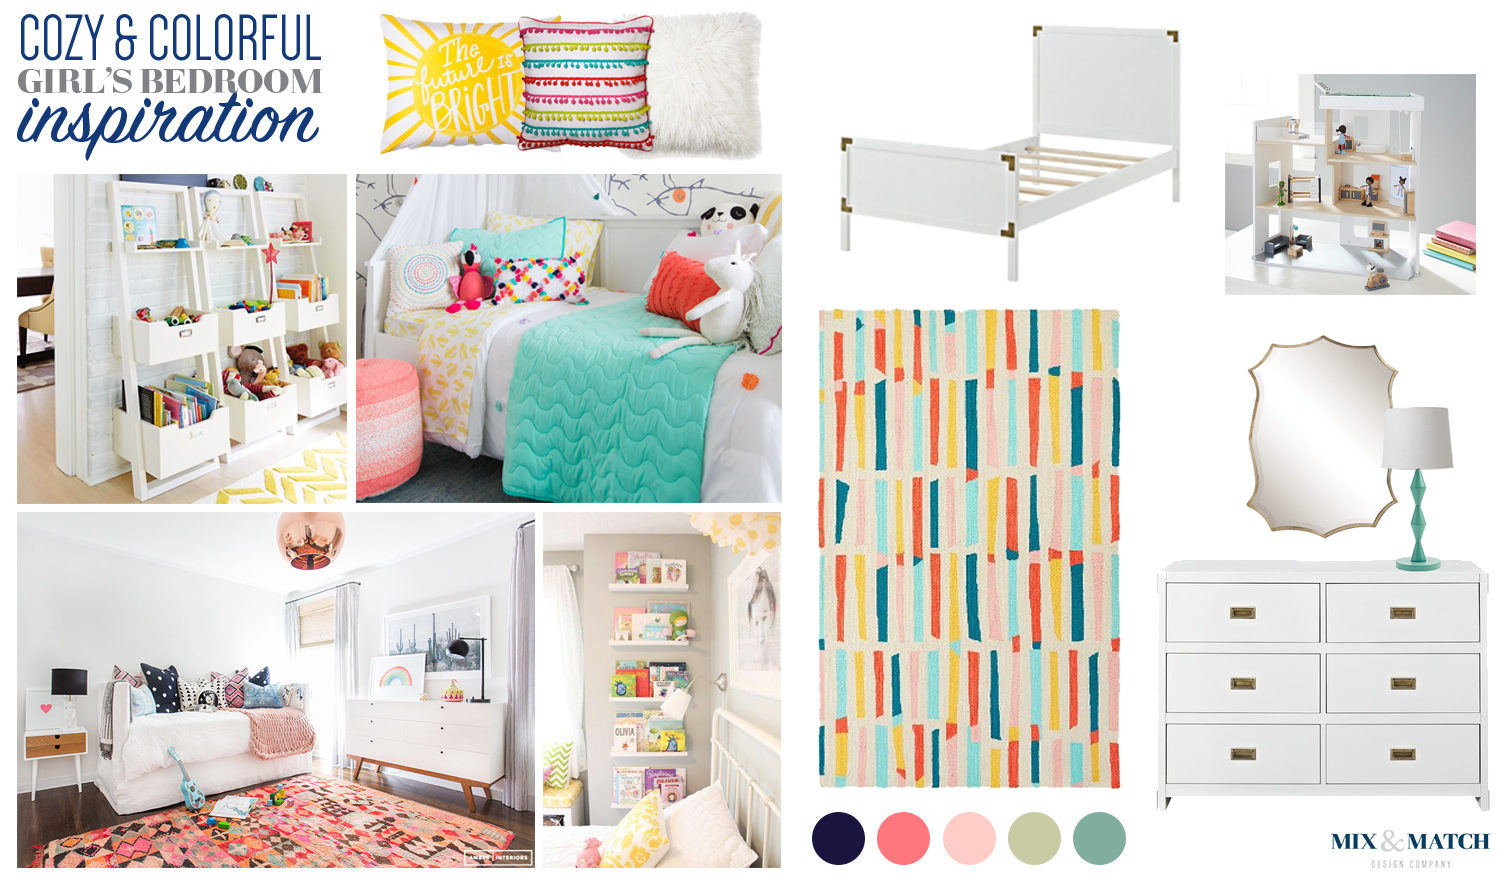 Cozy and colorful girl's bedroom (pink, navy, turquoise, and green)